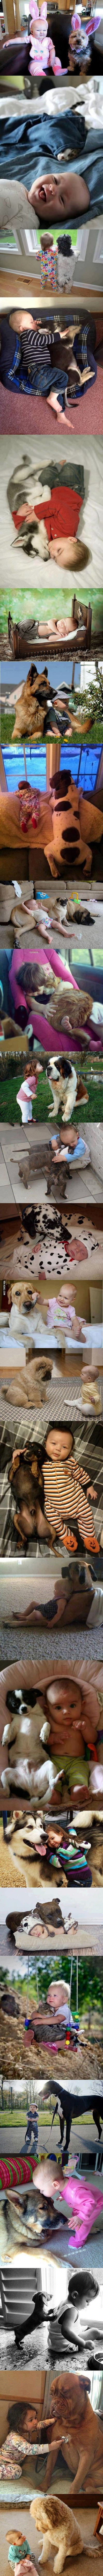 Cutest thing EVER!